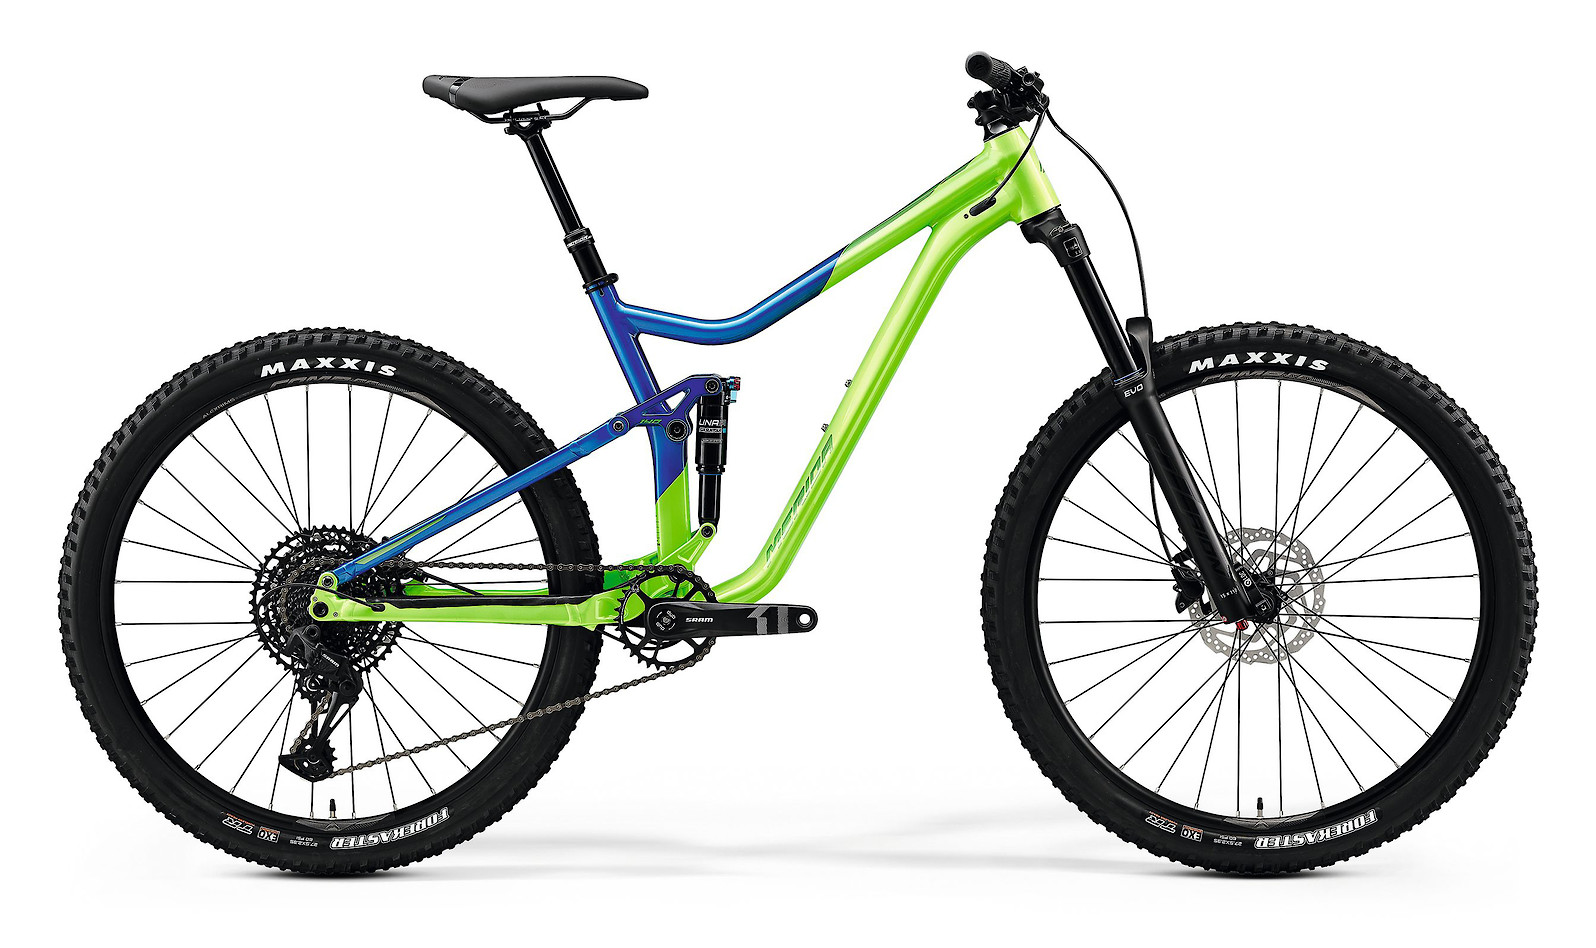 2020 Merida One-Forty 400 (Light Green/Glossy Blue)